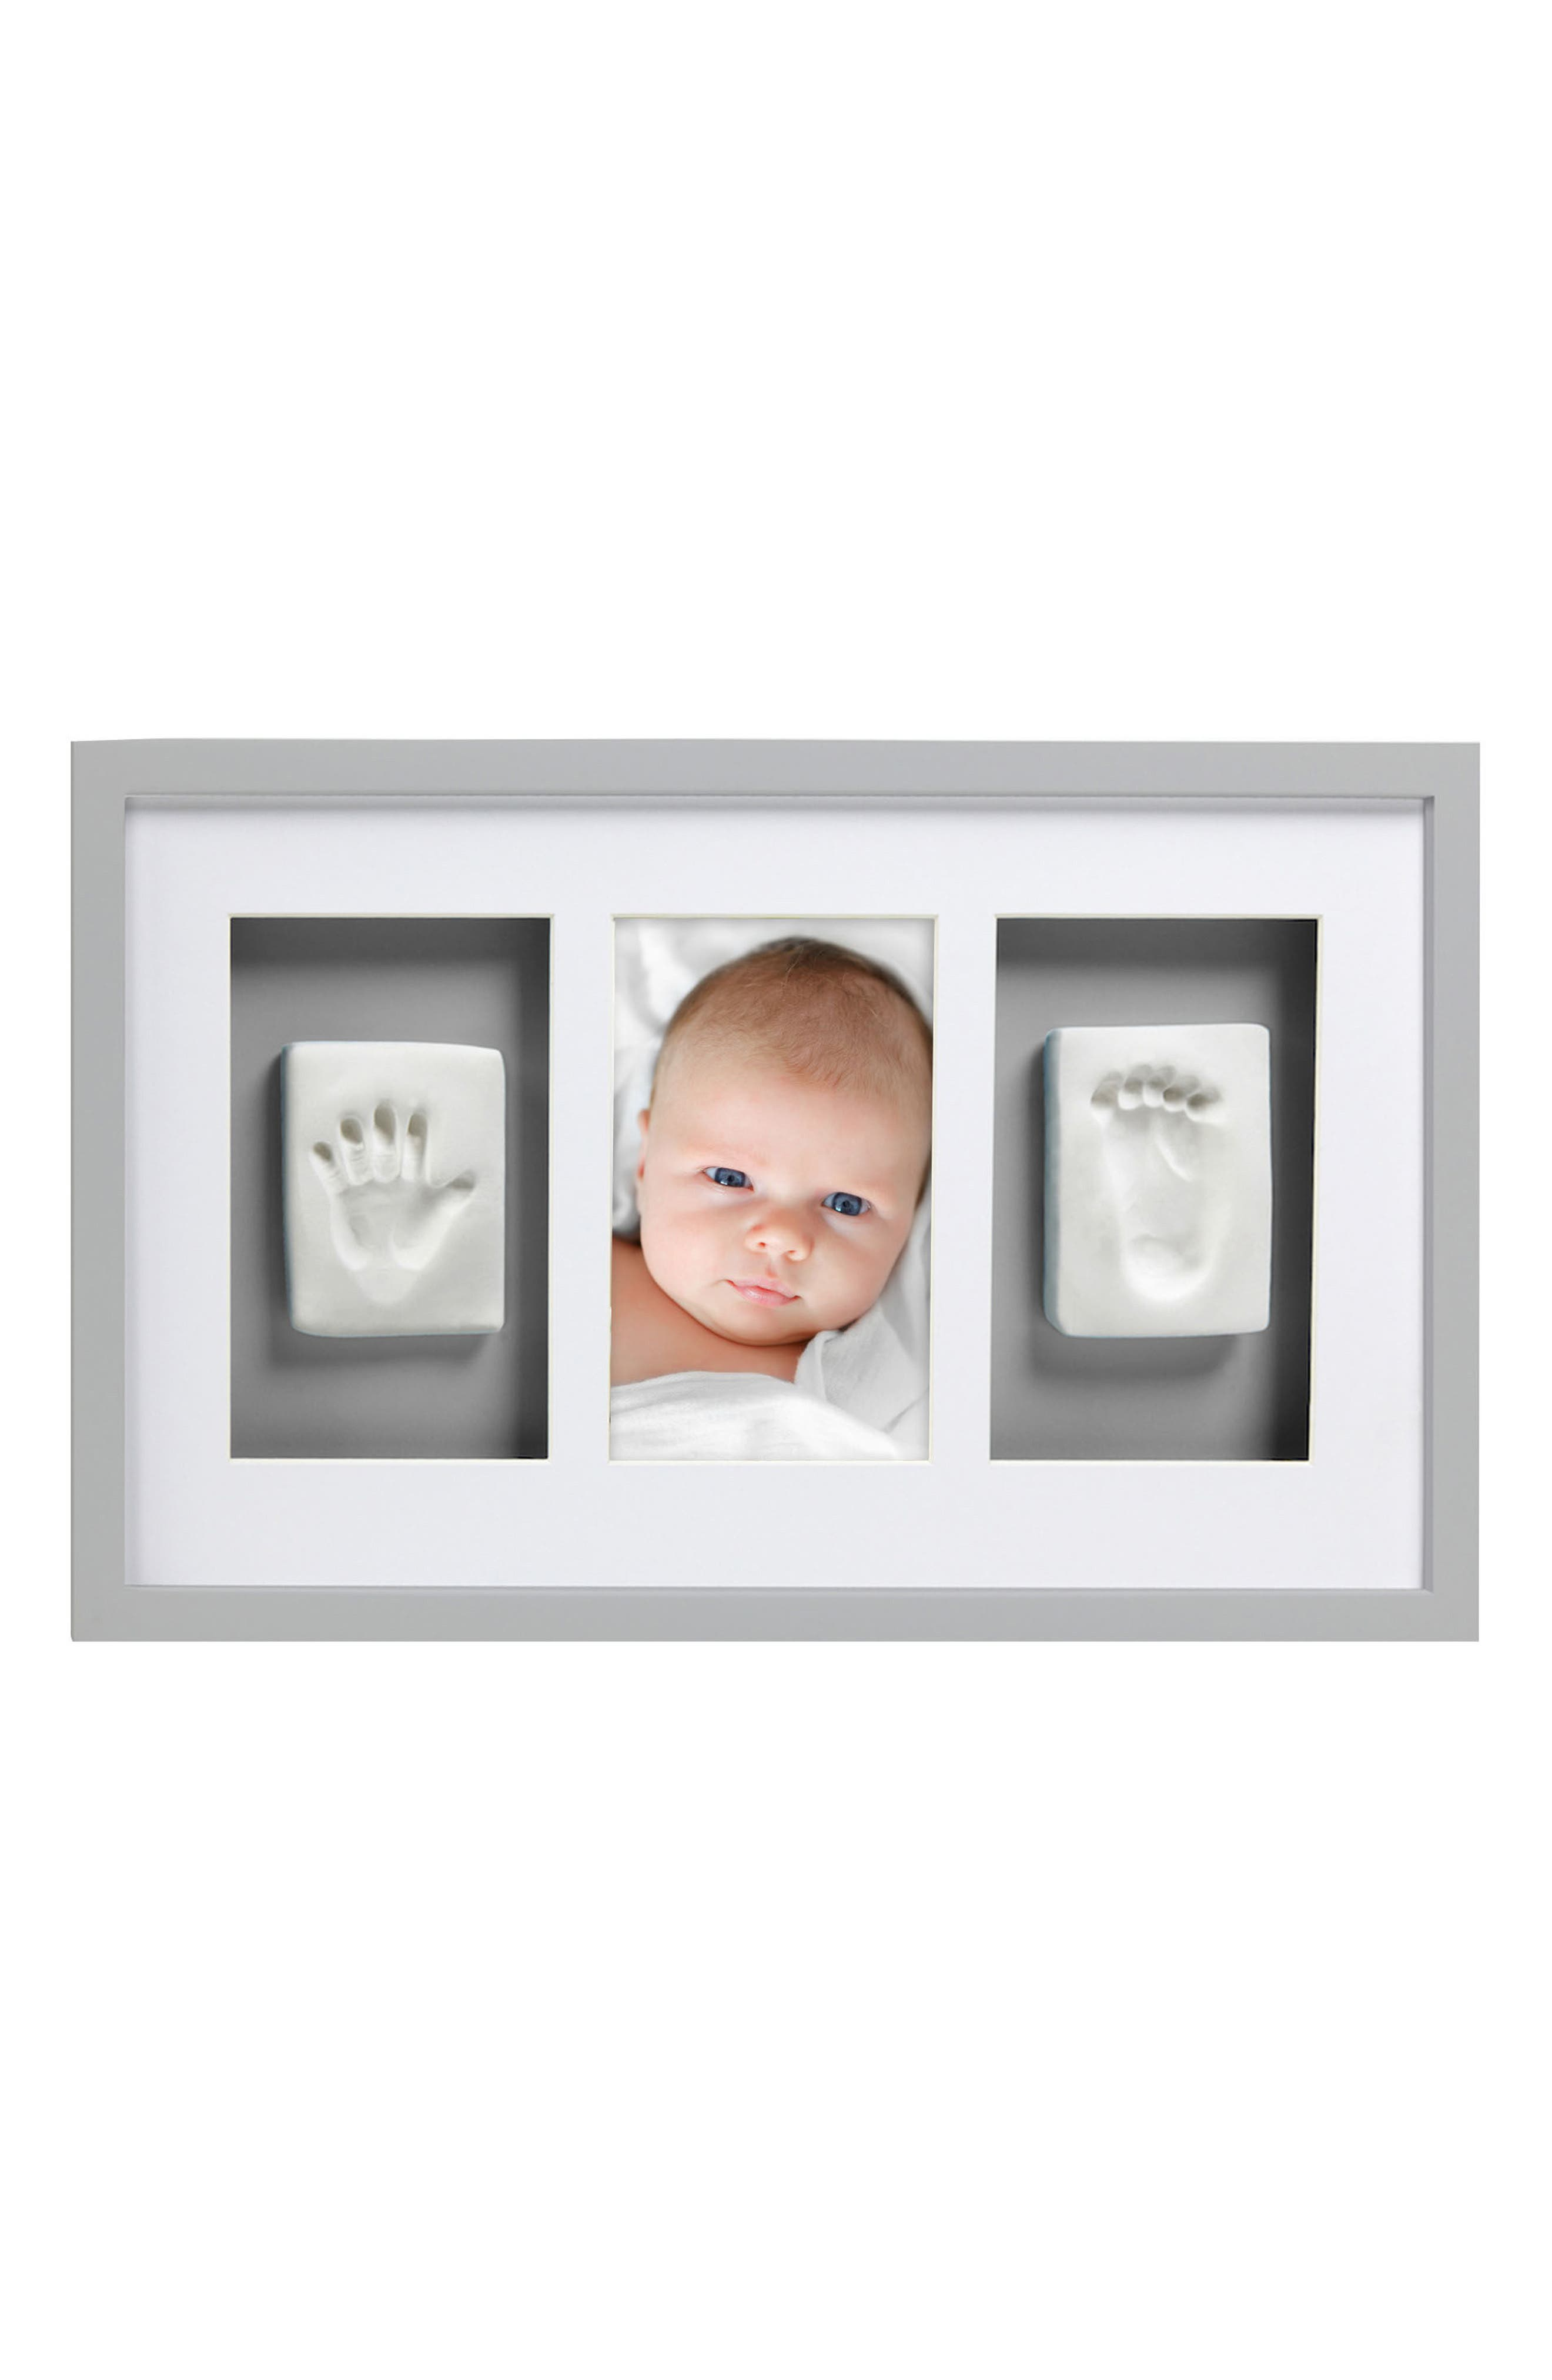 PEARHEAD Babyprints Deluxe Wall Frame Kit, Main, color, 020